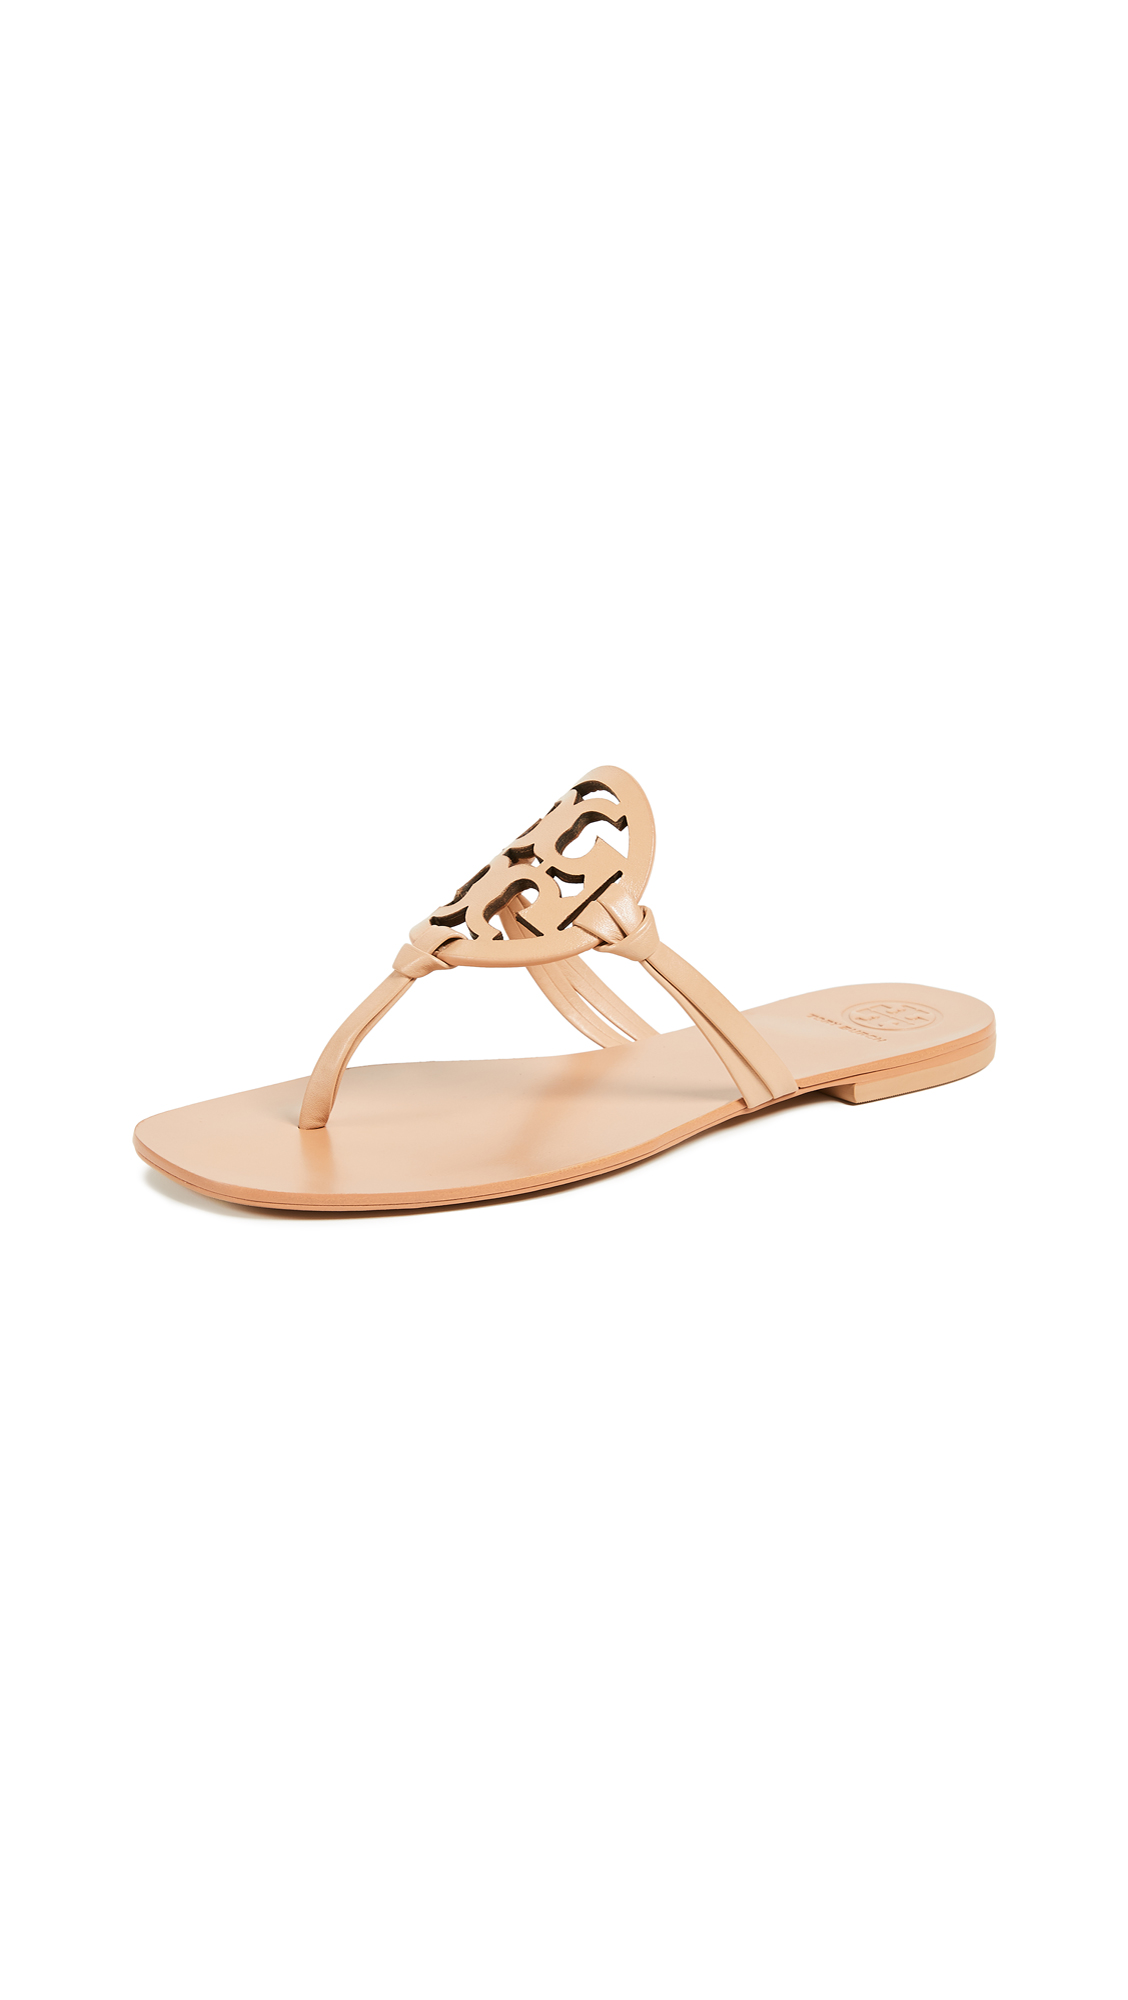 Tory Burch Miller Thong Sandals - Natural Vachetta